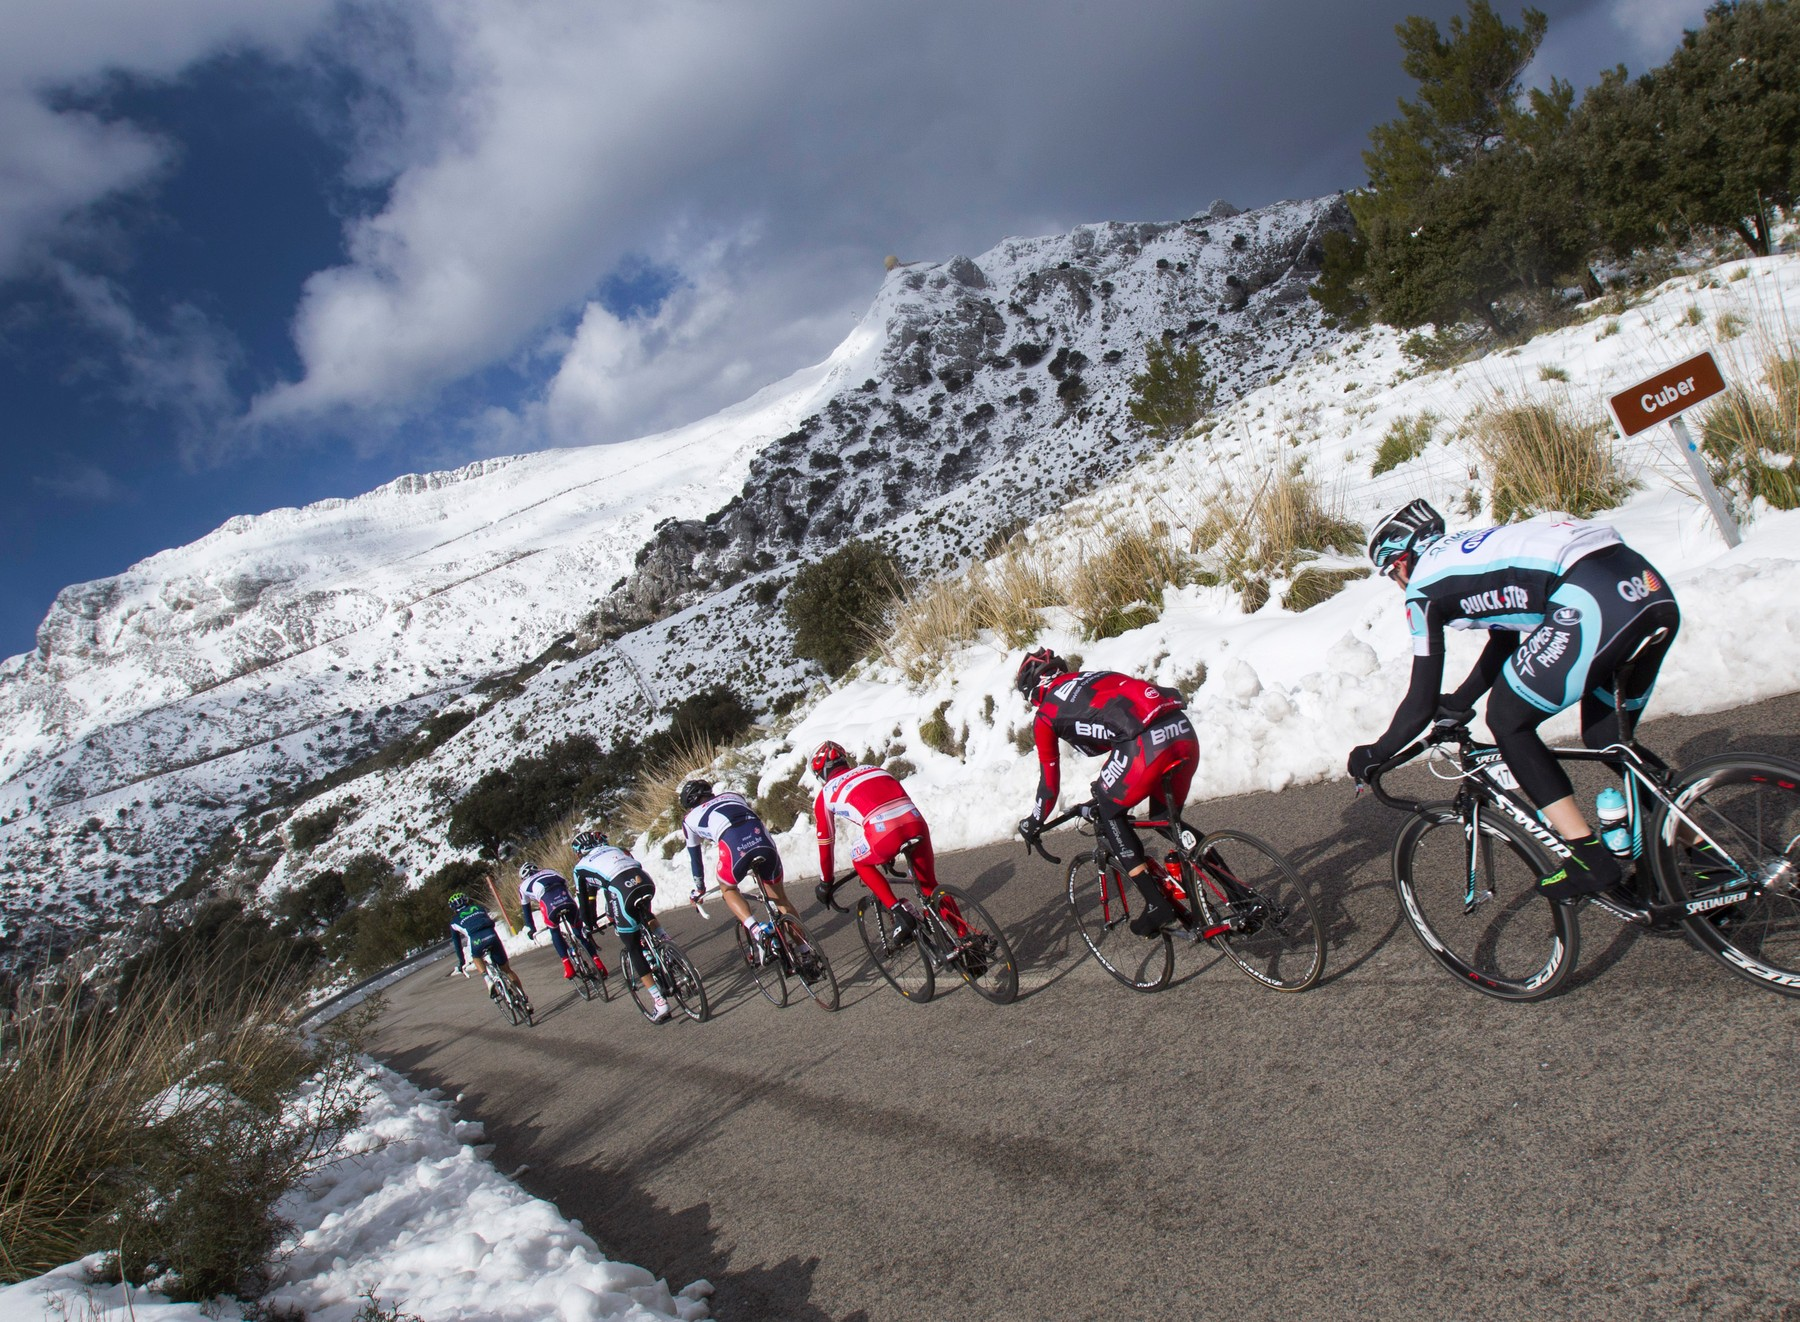 The pack ride in the tramuntana Mountains during the third stage of the Mallorca Challenge race on February 7, 2012., Image: 116844761, License: Rights-managed, Restrictions: , Model Release: no, Credit line: Profimedia, AFP